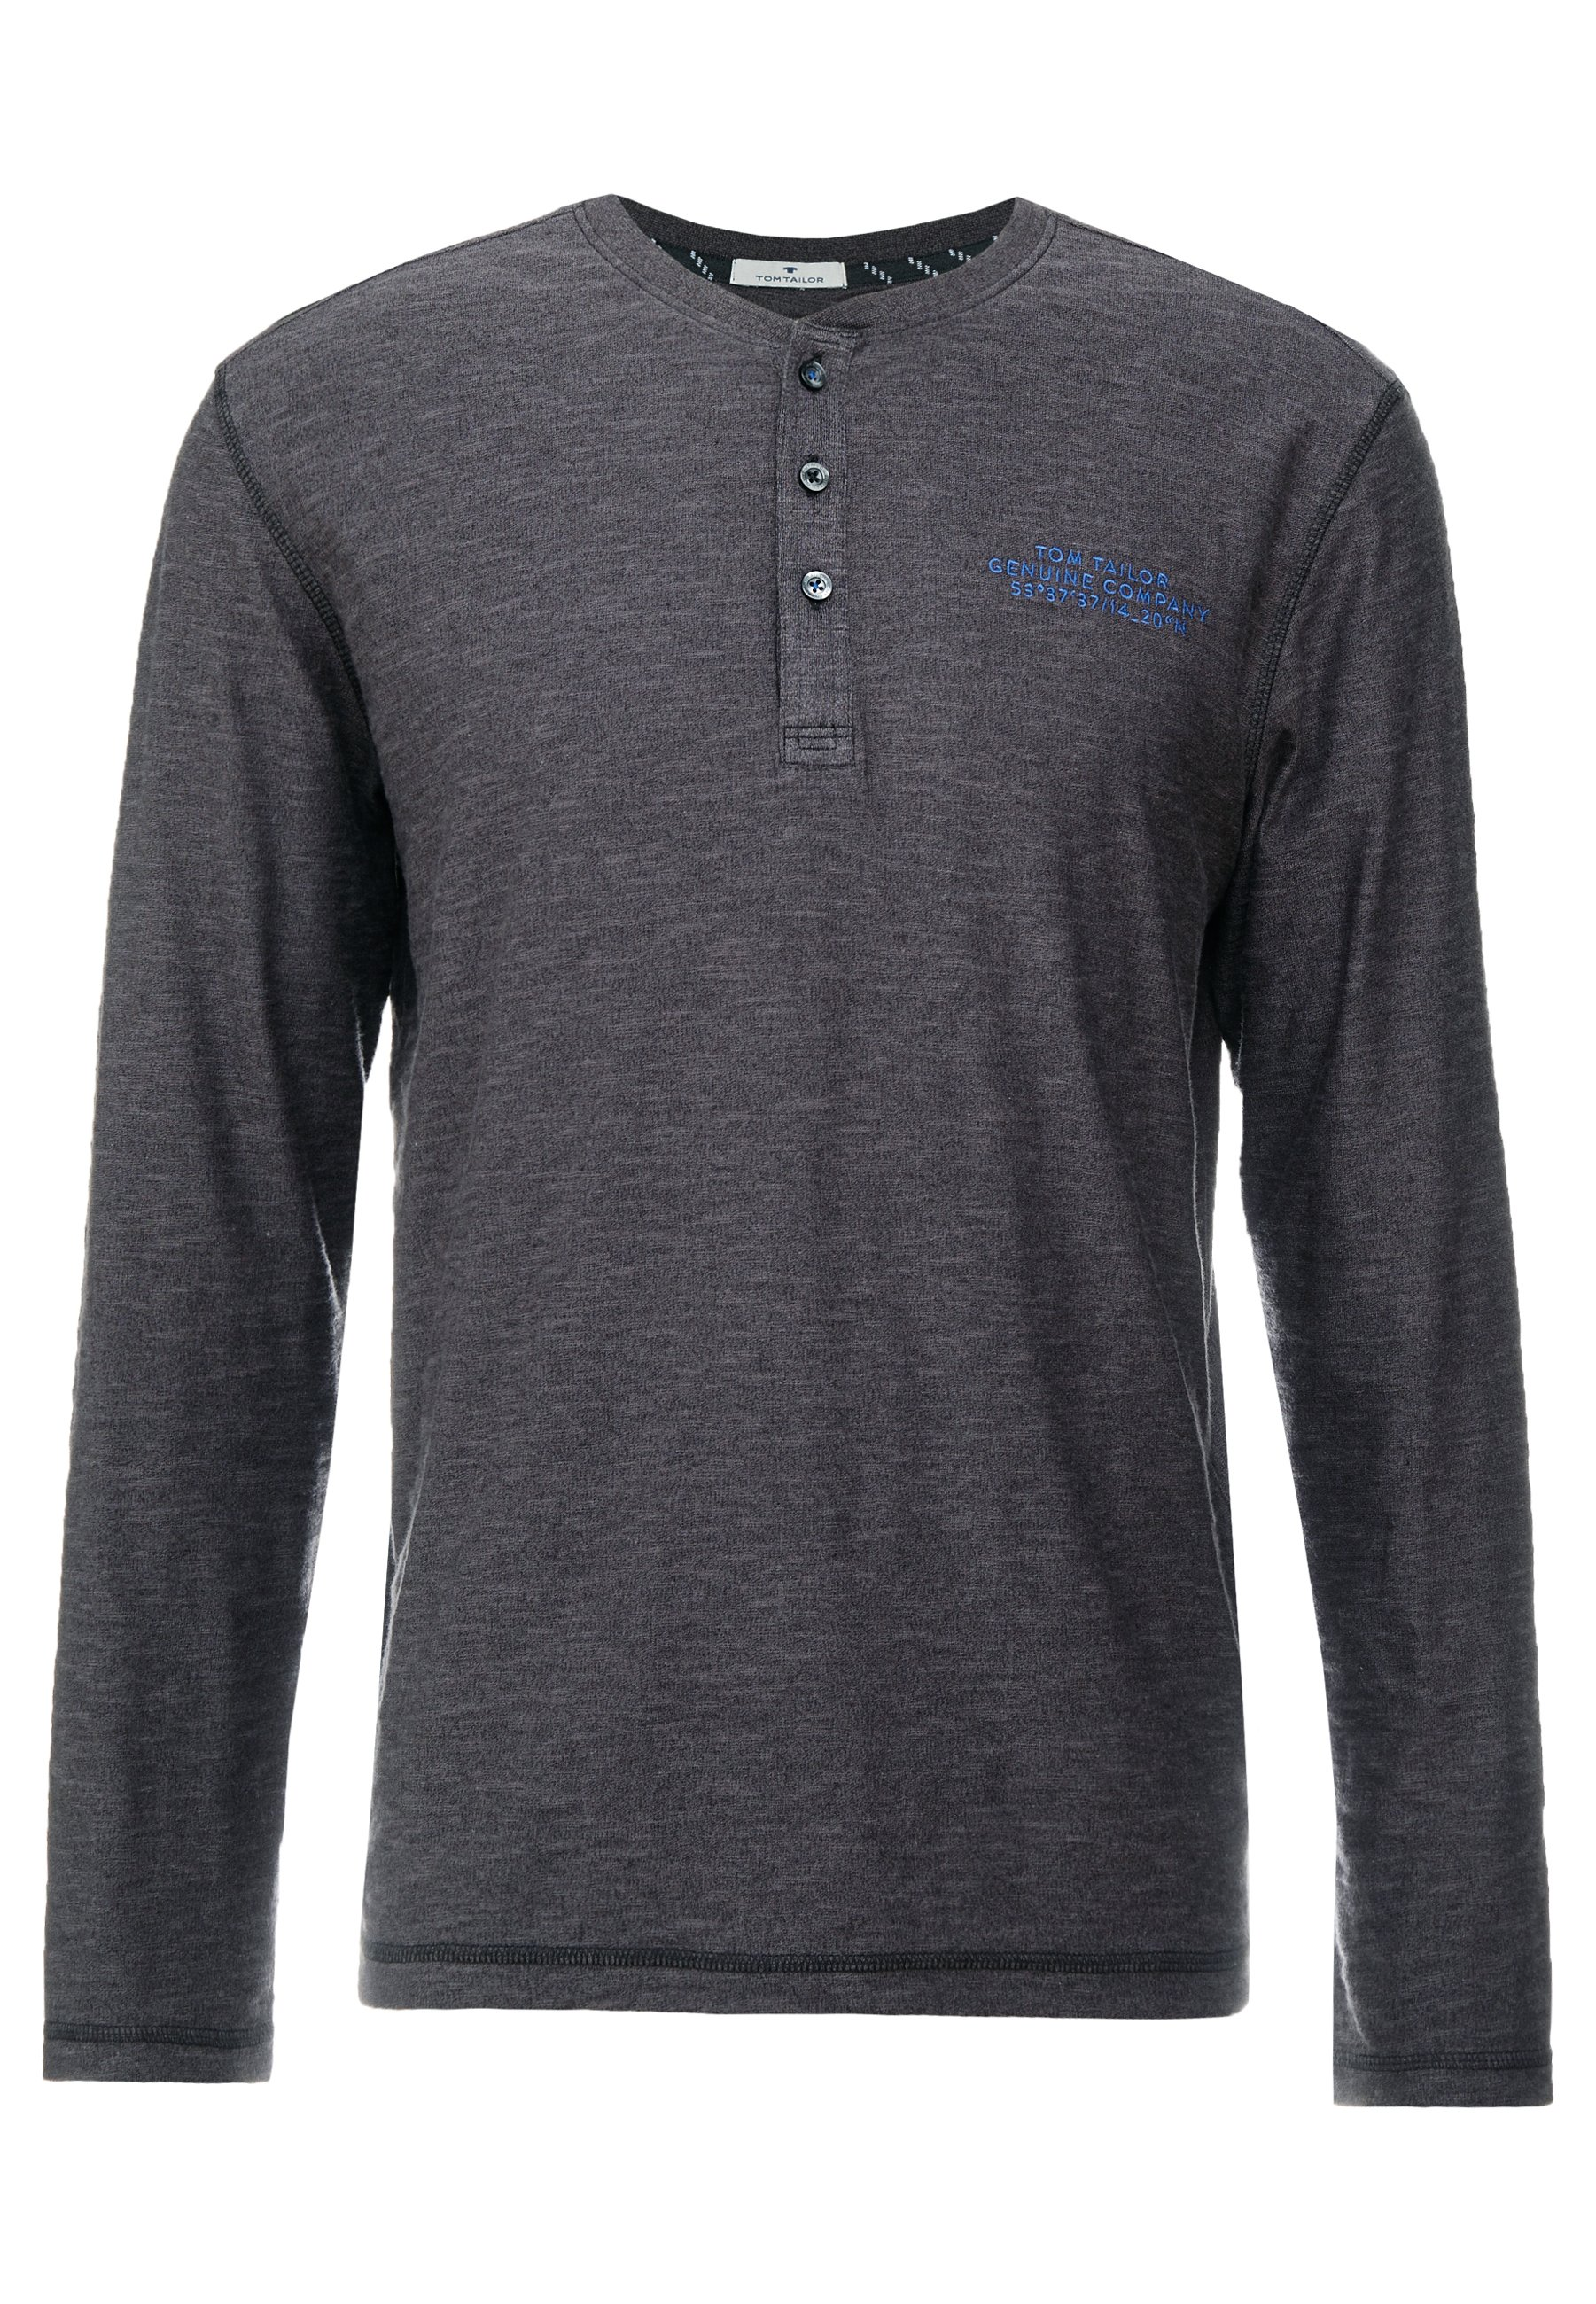 Tom Tailor Cosy Henley With Embroidery - Long Sleeved Top Grindle Slub Black/grey